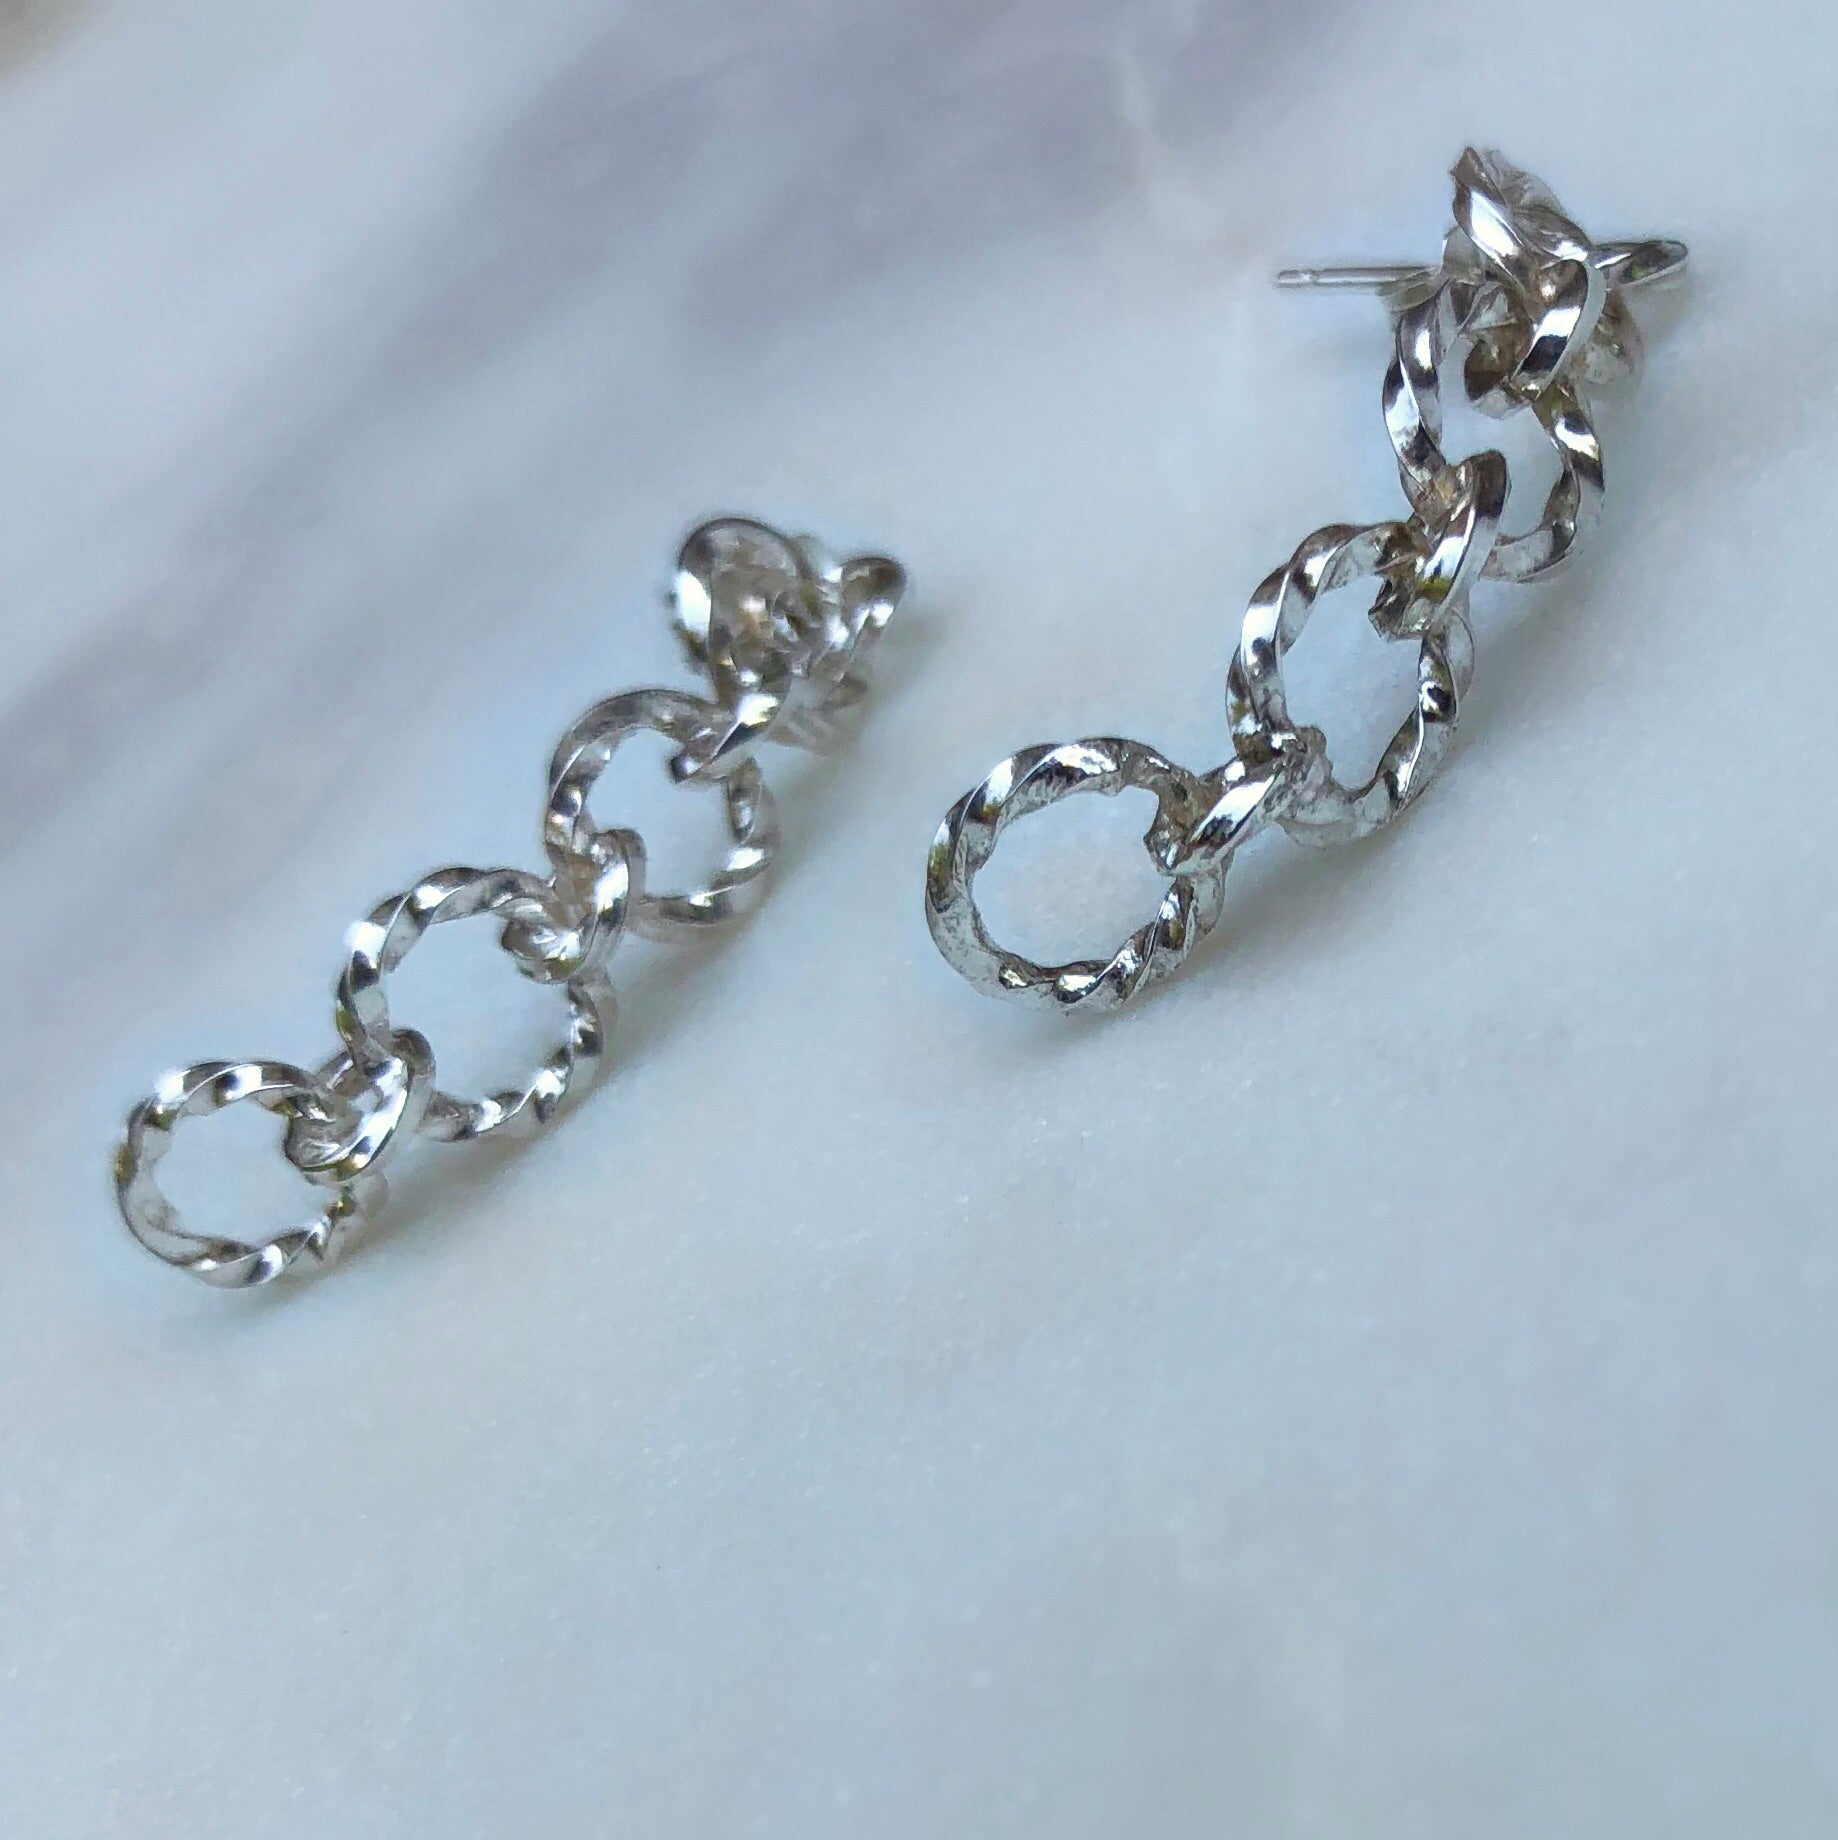 Linked Earrings - Silver